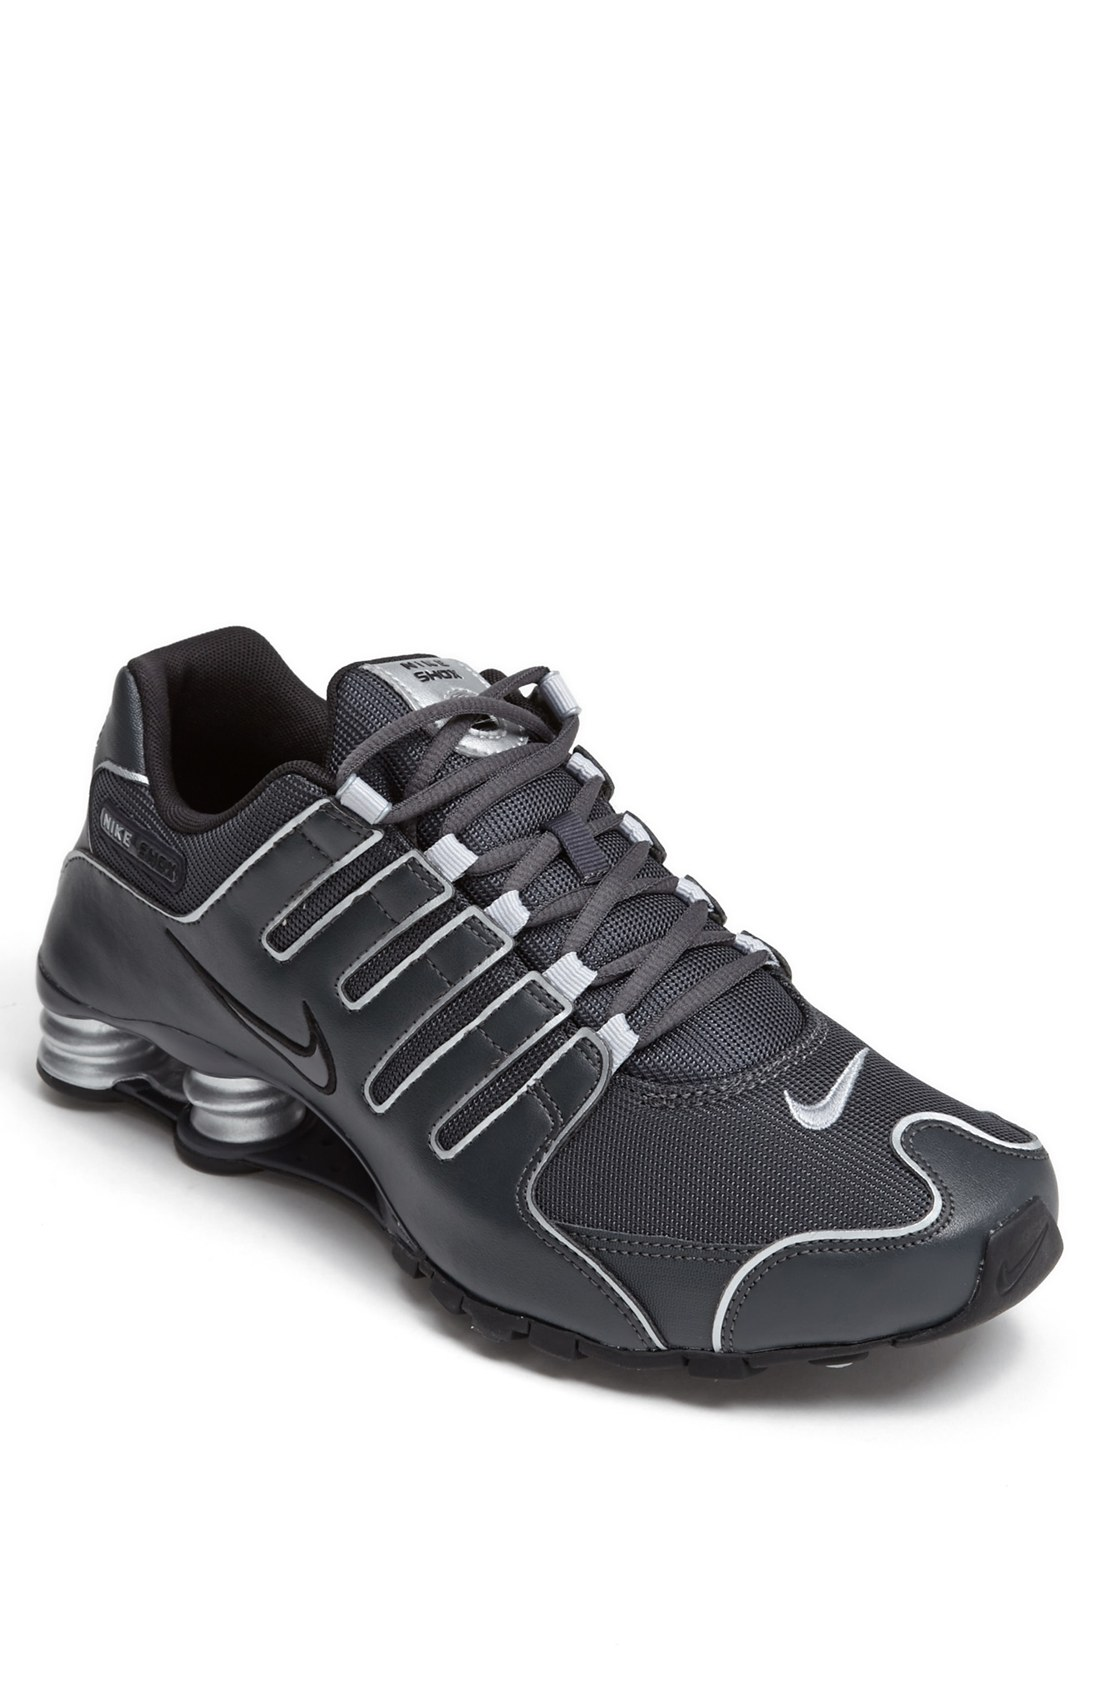 nike shox nz running shoe in silver for anthracite